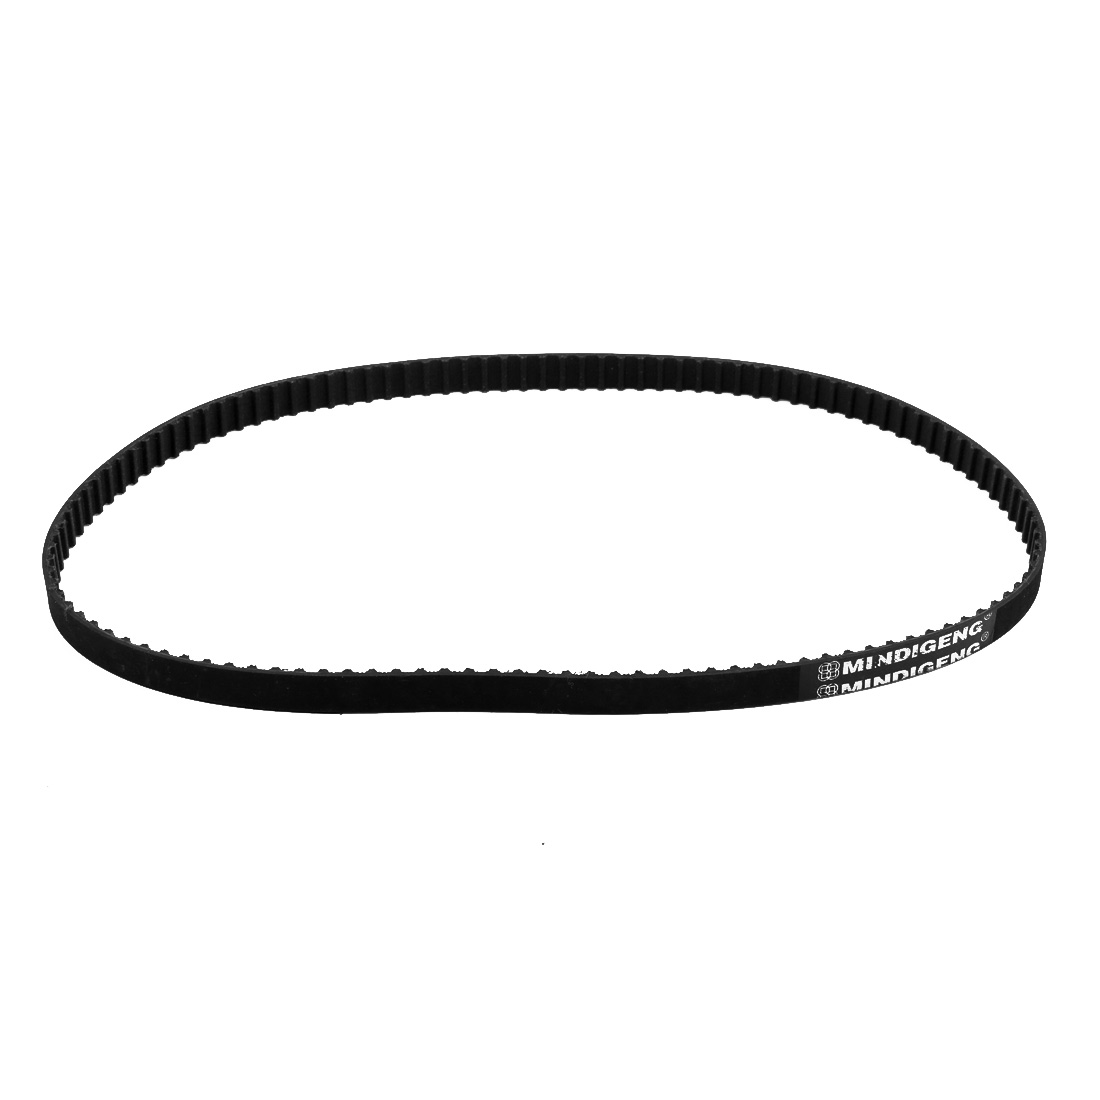 238XL 119 Teeth 10mm Width 5.08mm Pitch Stepper Motor Rubber Timing Geared Belt